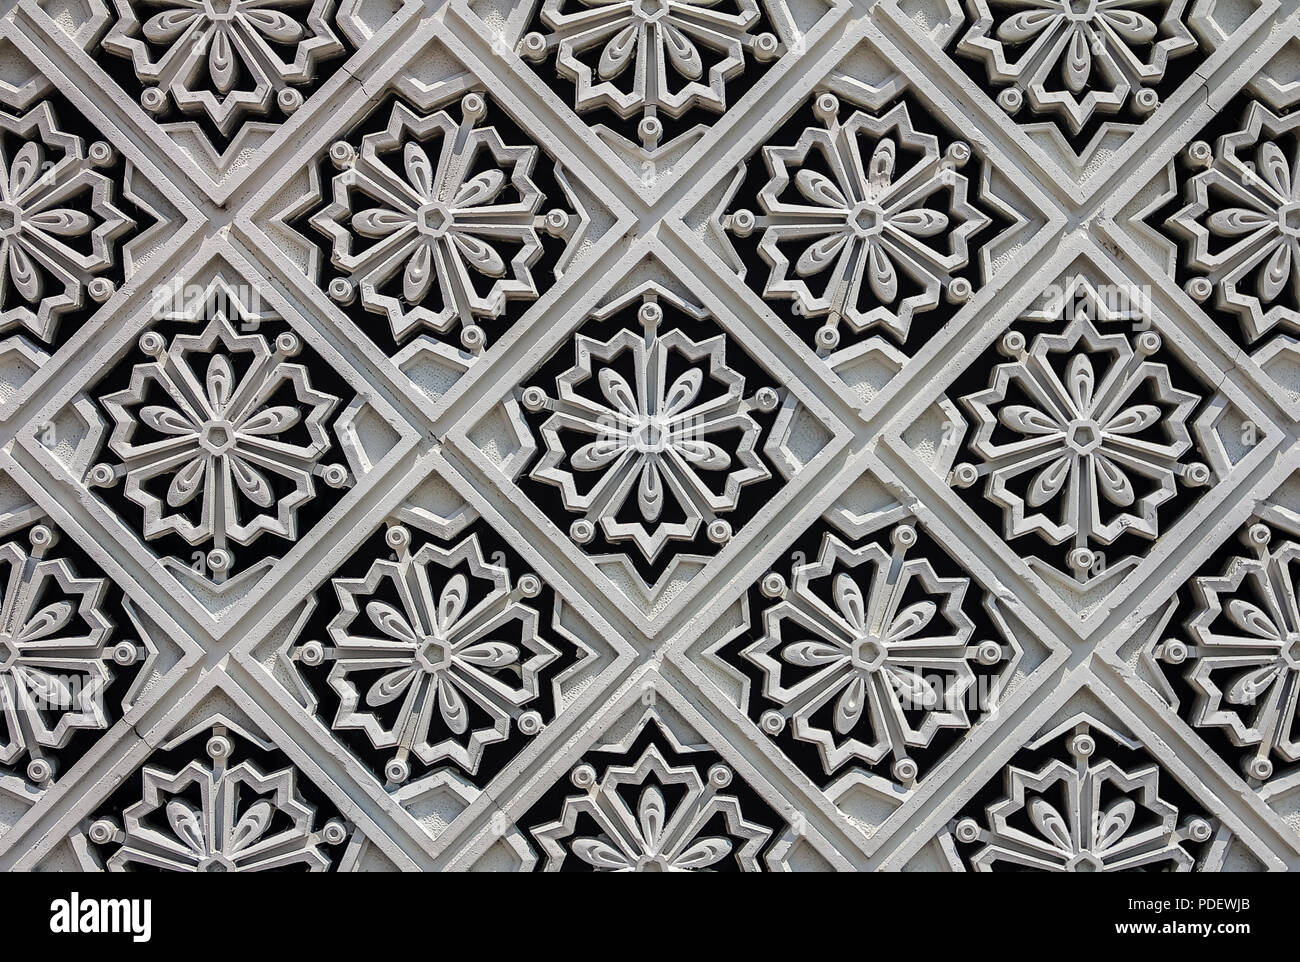 Malaysia, Kuala Lumpur - August 16, 2013: Carved tile decorations on the outer wall of the New Royal Palace, Istana Negara (national palace) in Kuala  - Stock Image